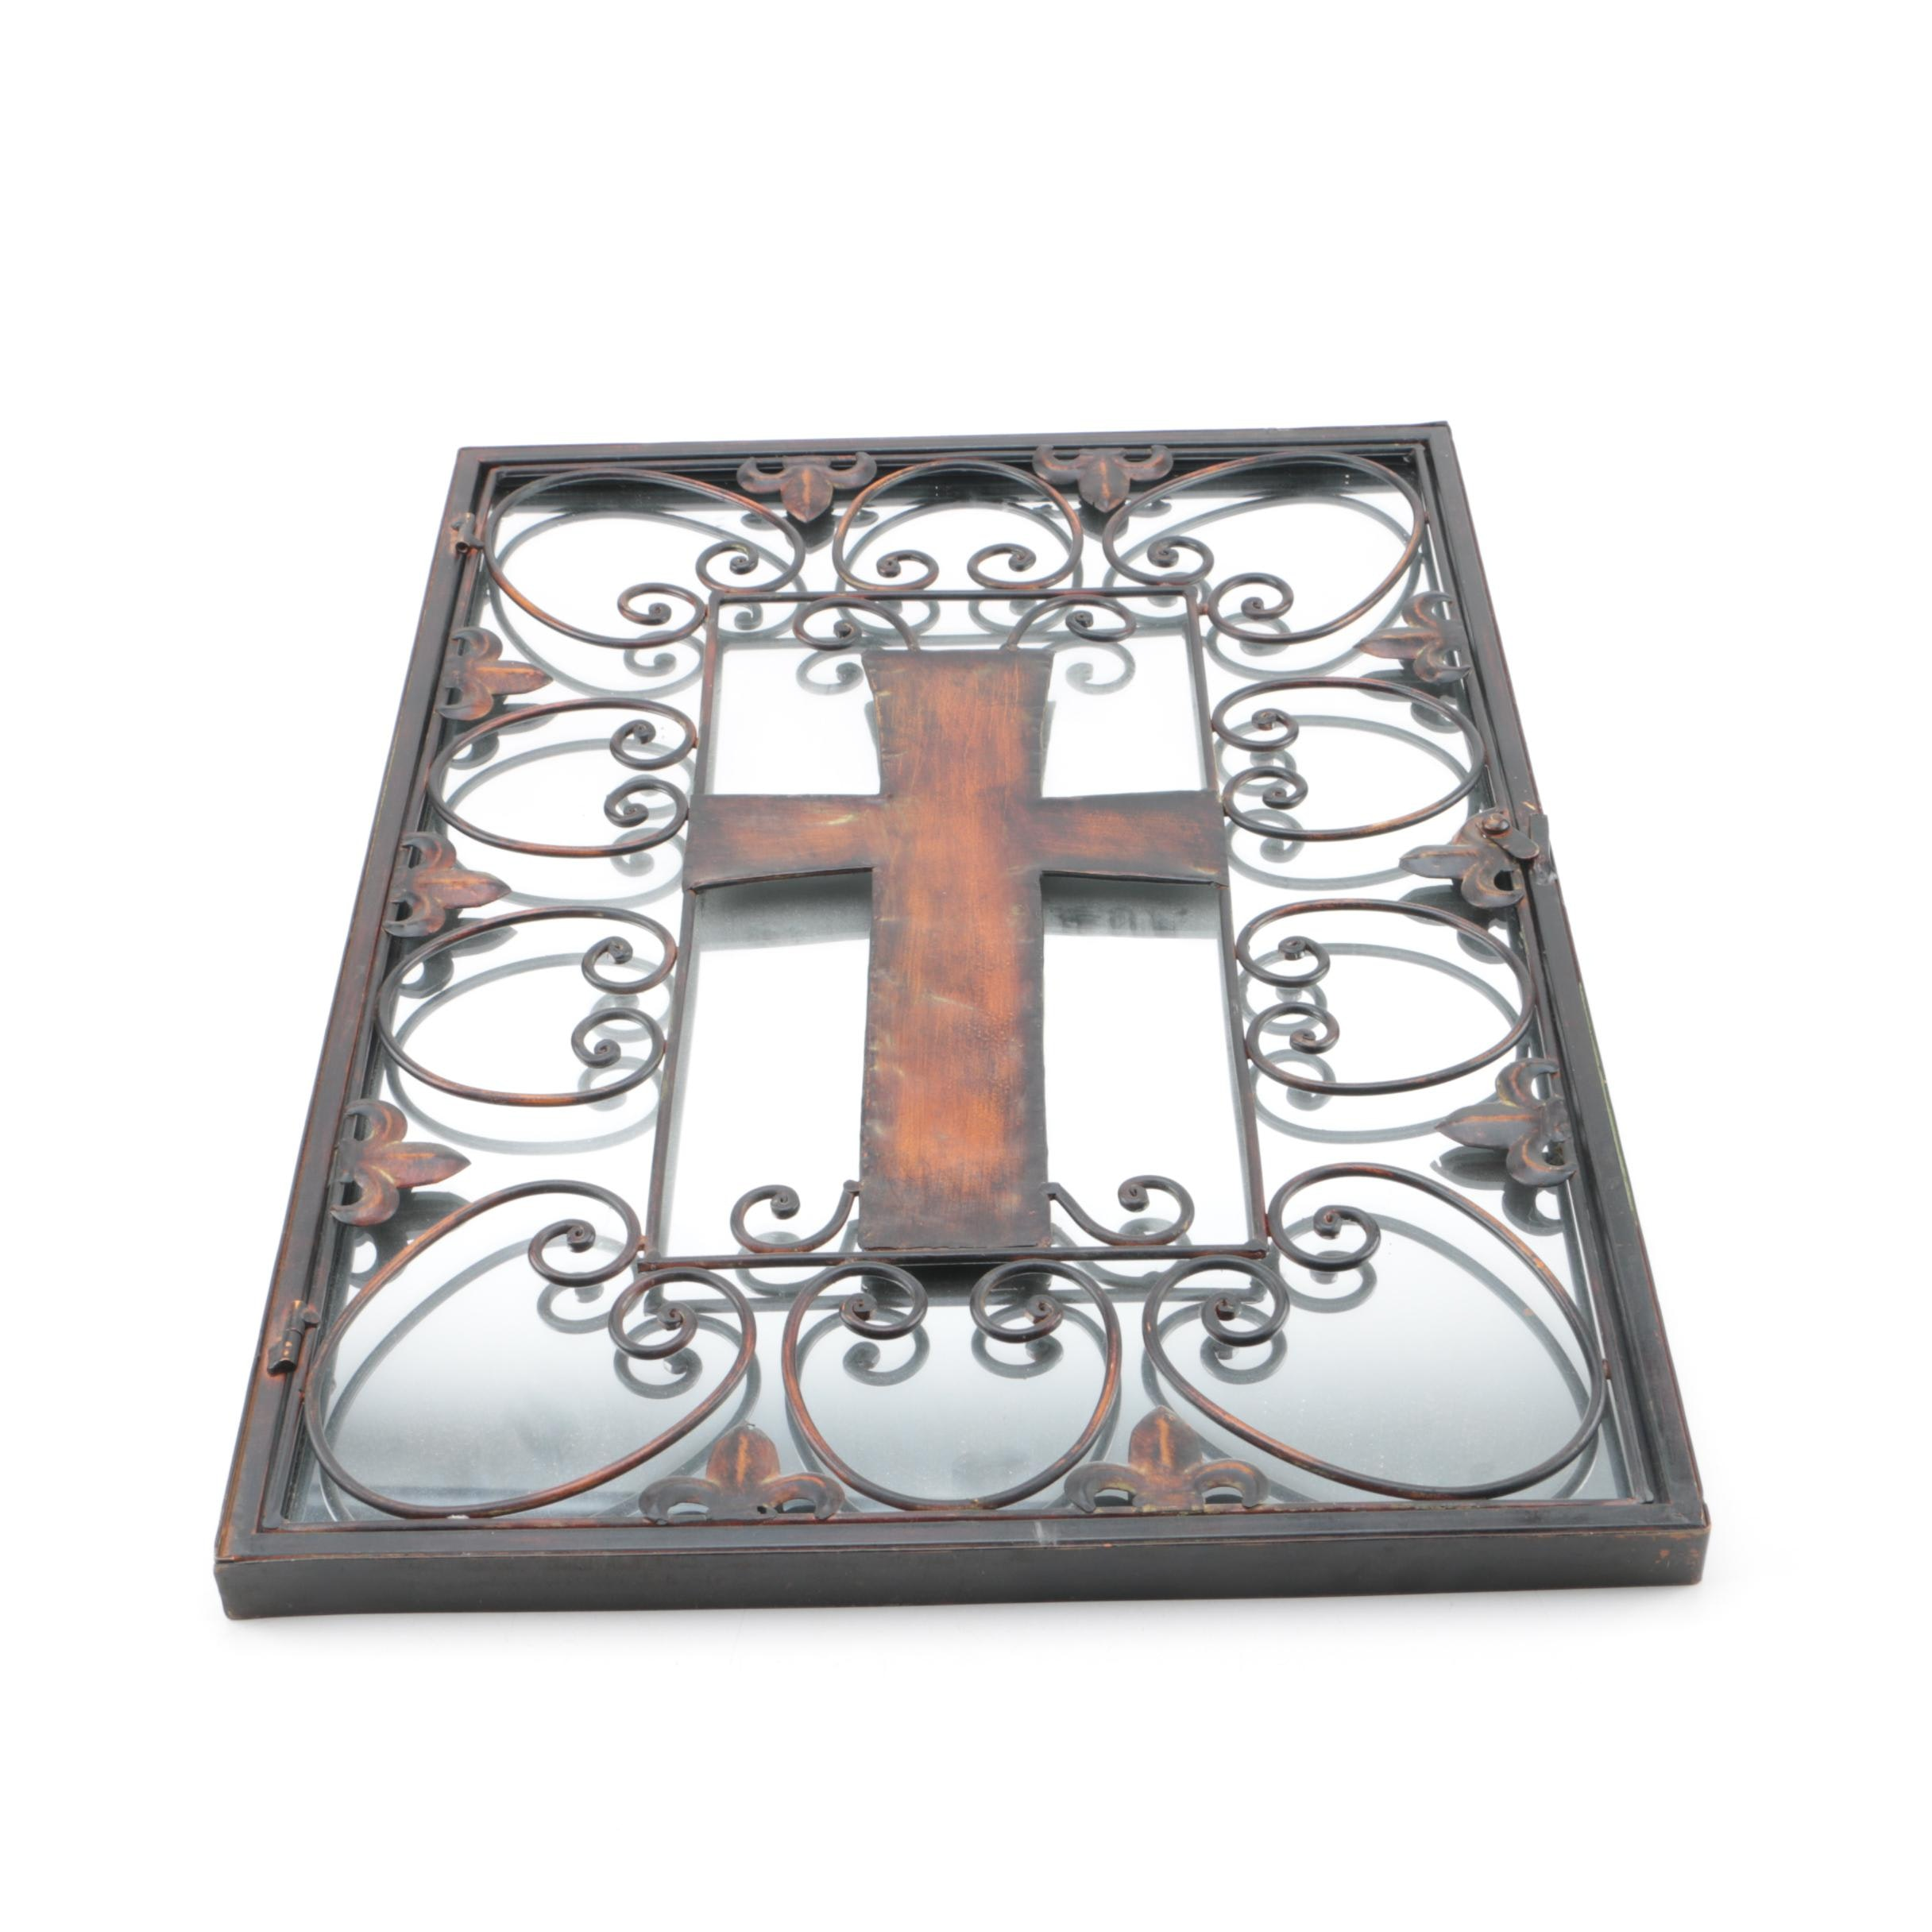 Mirror with Metal Frame and Cross Motif Panel